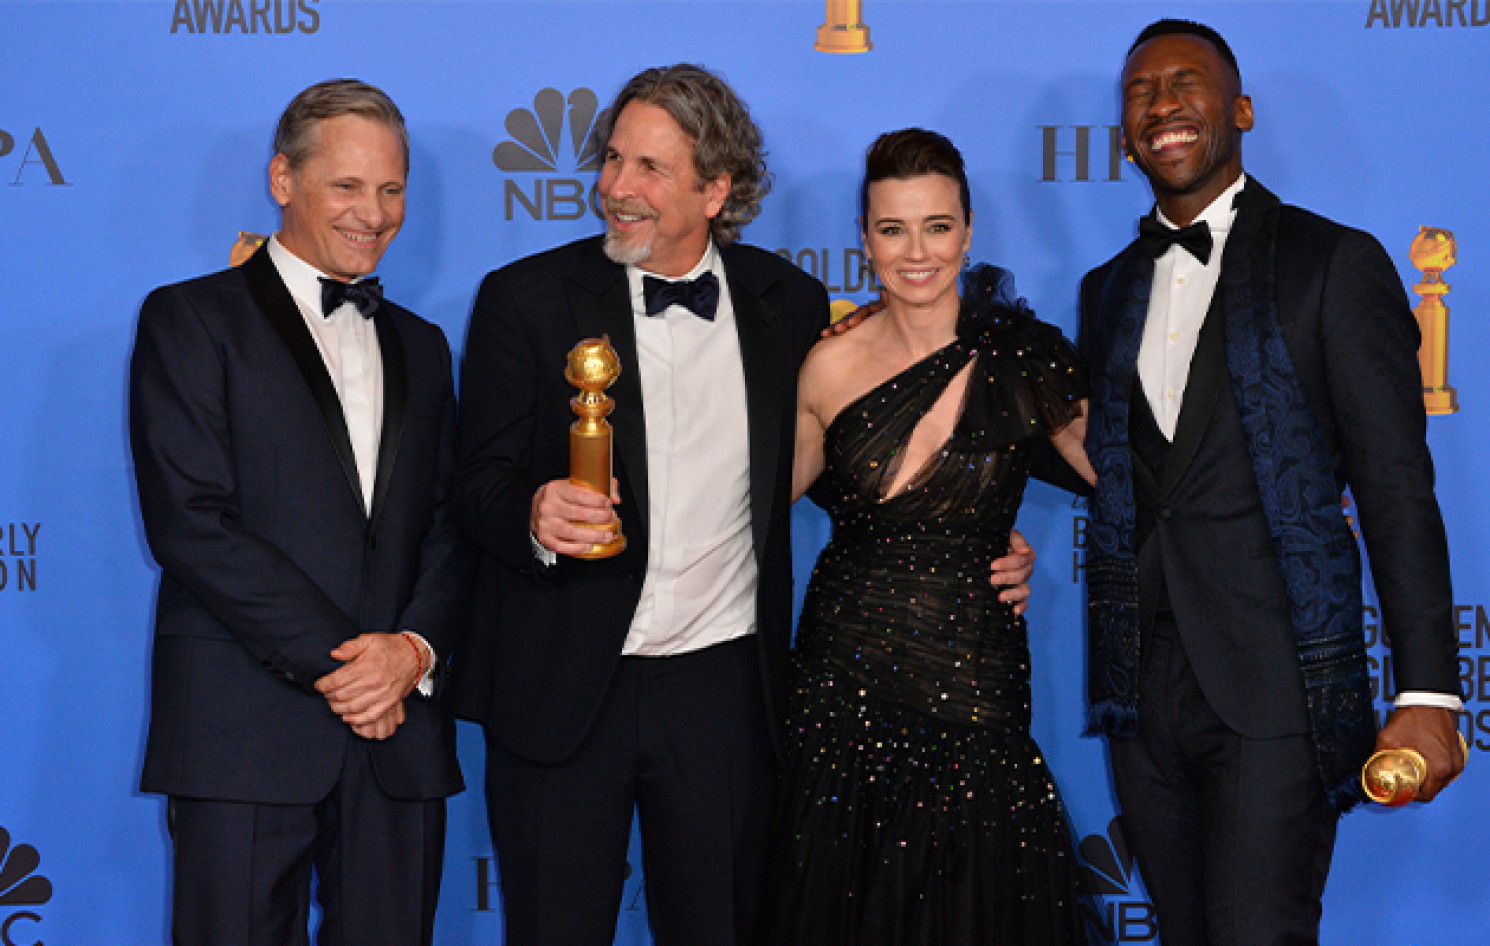 Viggo Mortensen, Peter Farrelly, Linda Cardellini und Mahershala Ali bei den Golden Globes | © Featureflash Photo Agency / Shutterstock